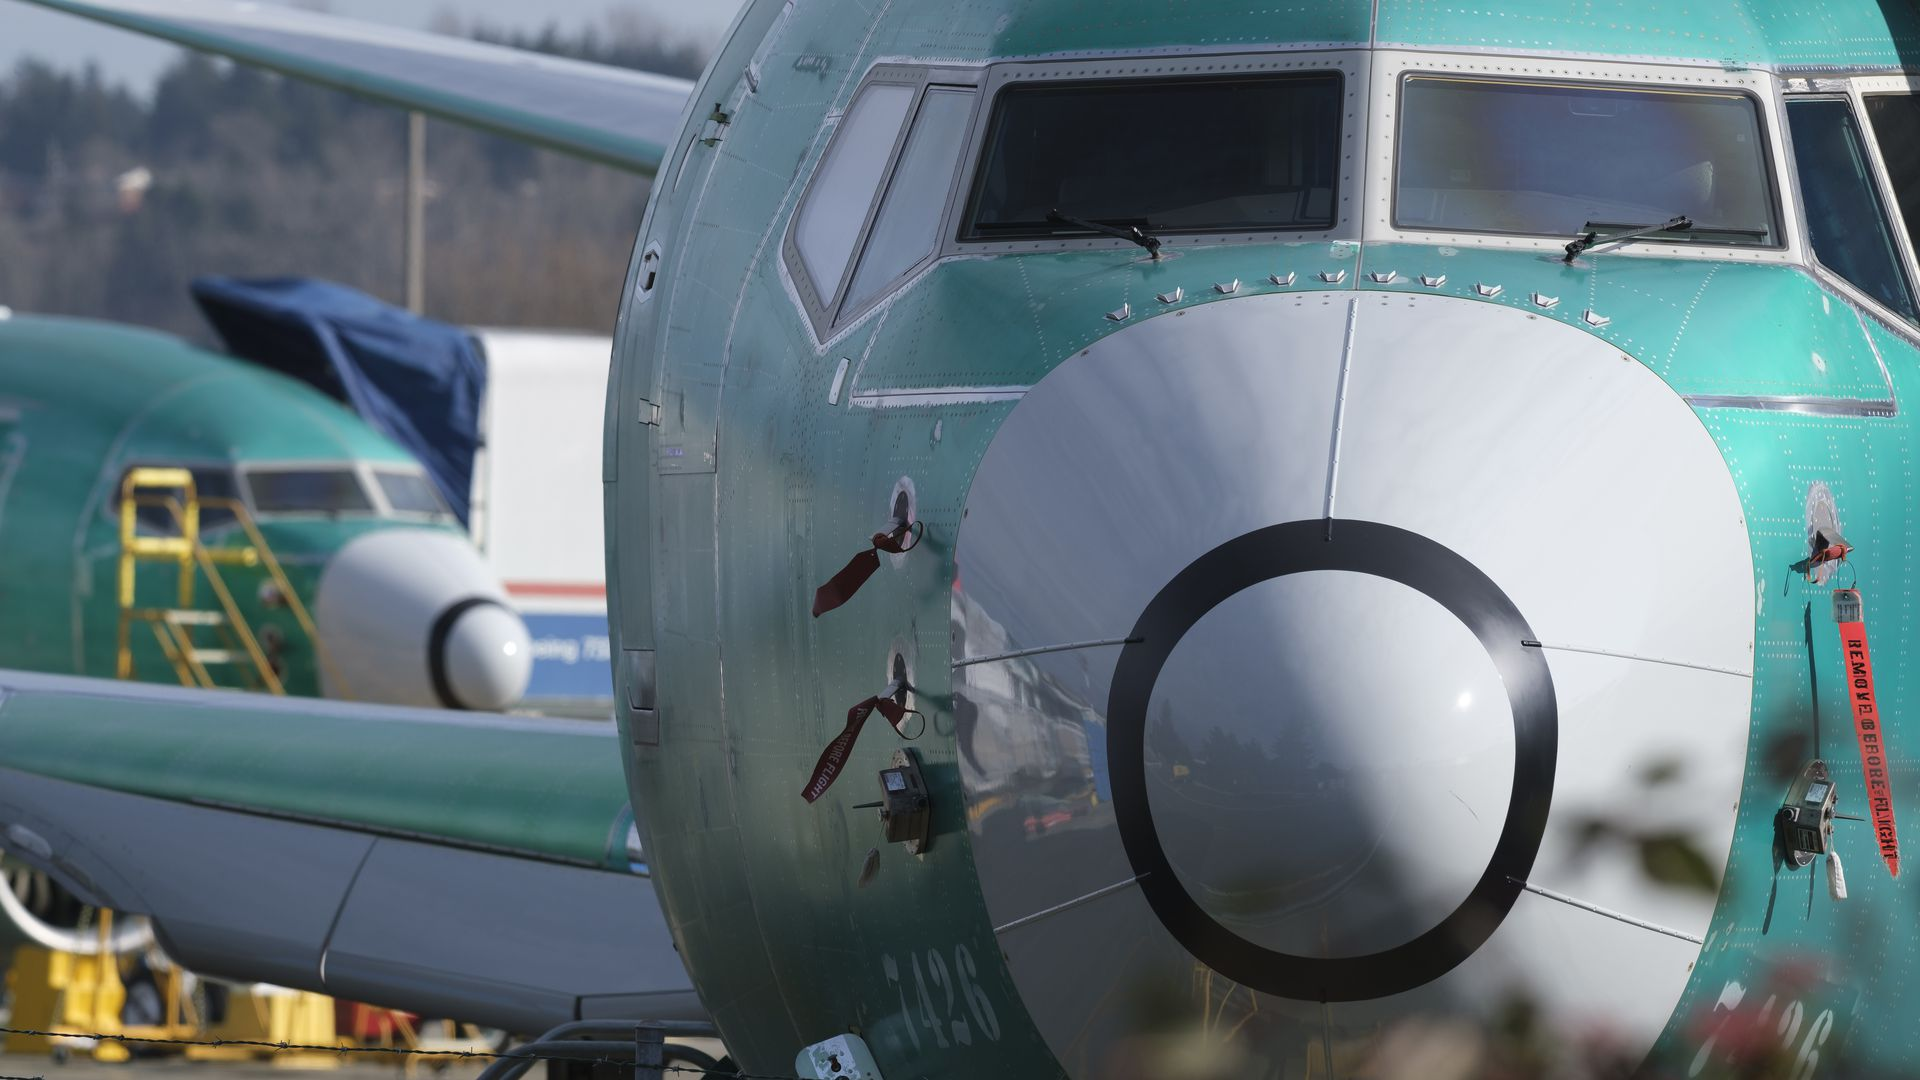 Canada, Europe to conduct own reviews into Boeing 737 Max jets